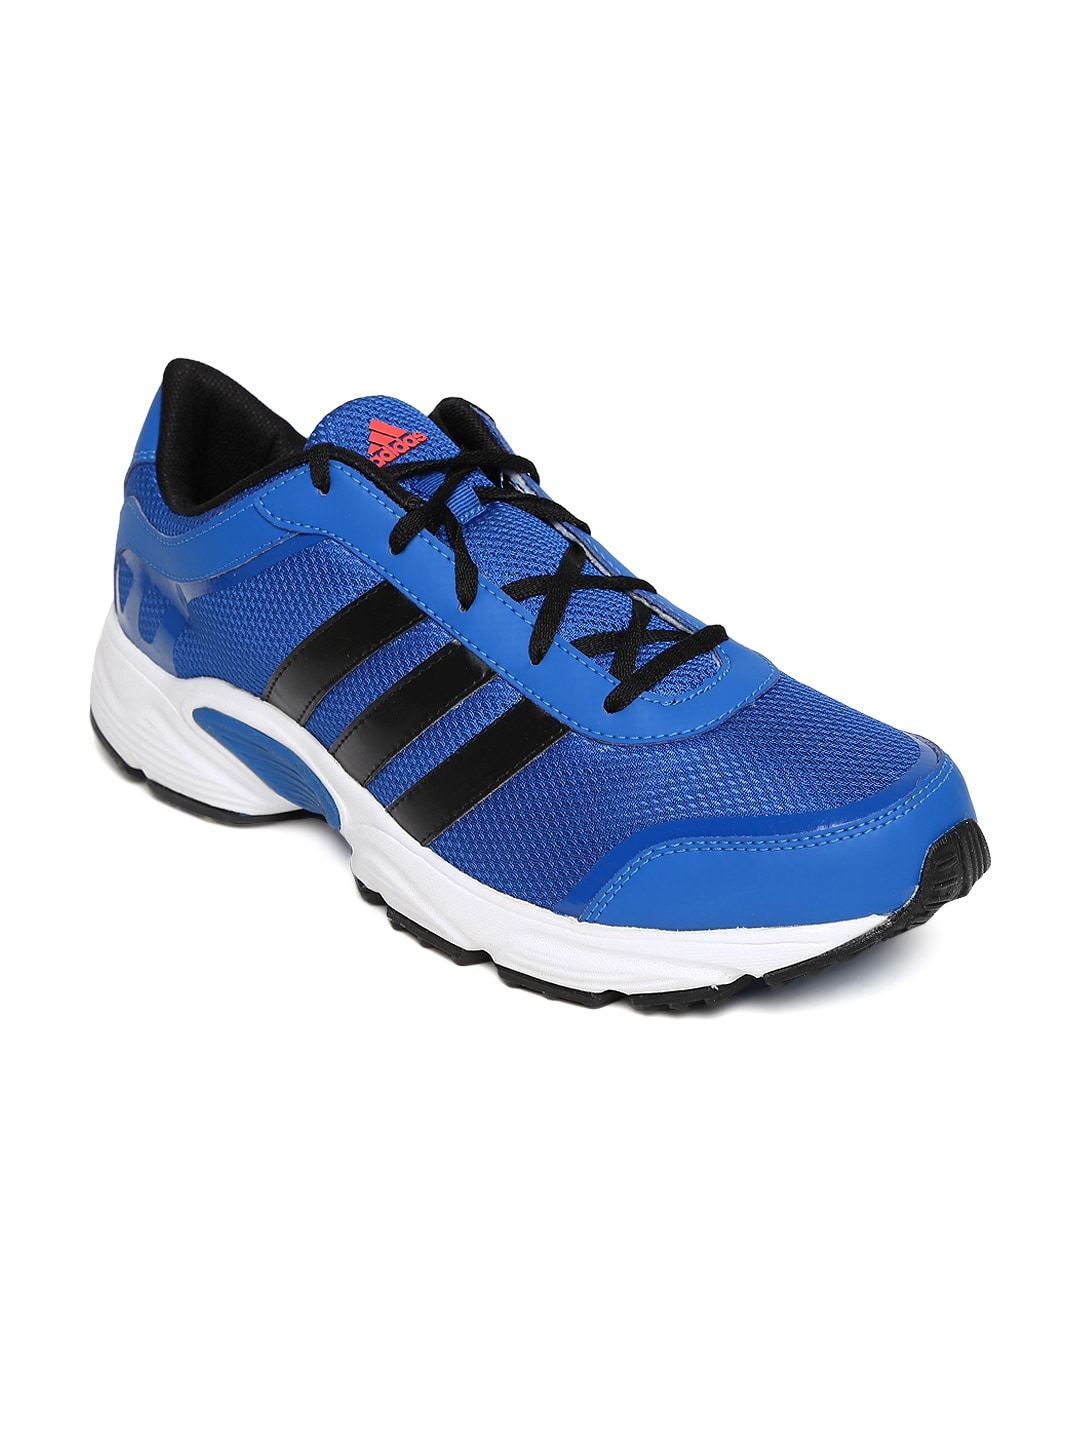 Adidas b08239 Men Blue Tark M Running Shoes Best Price